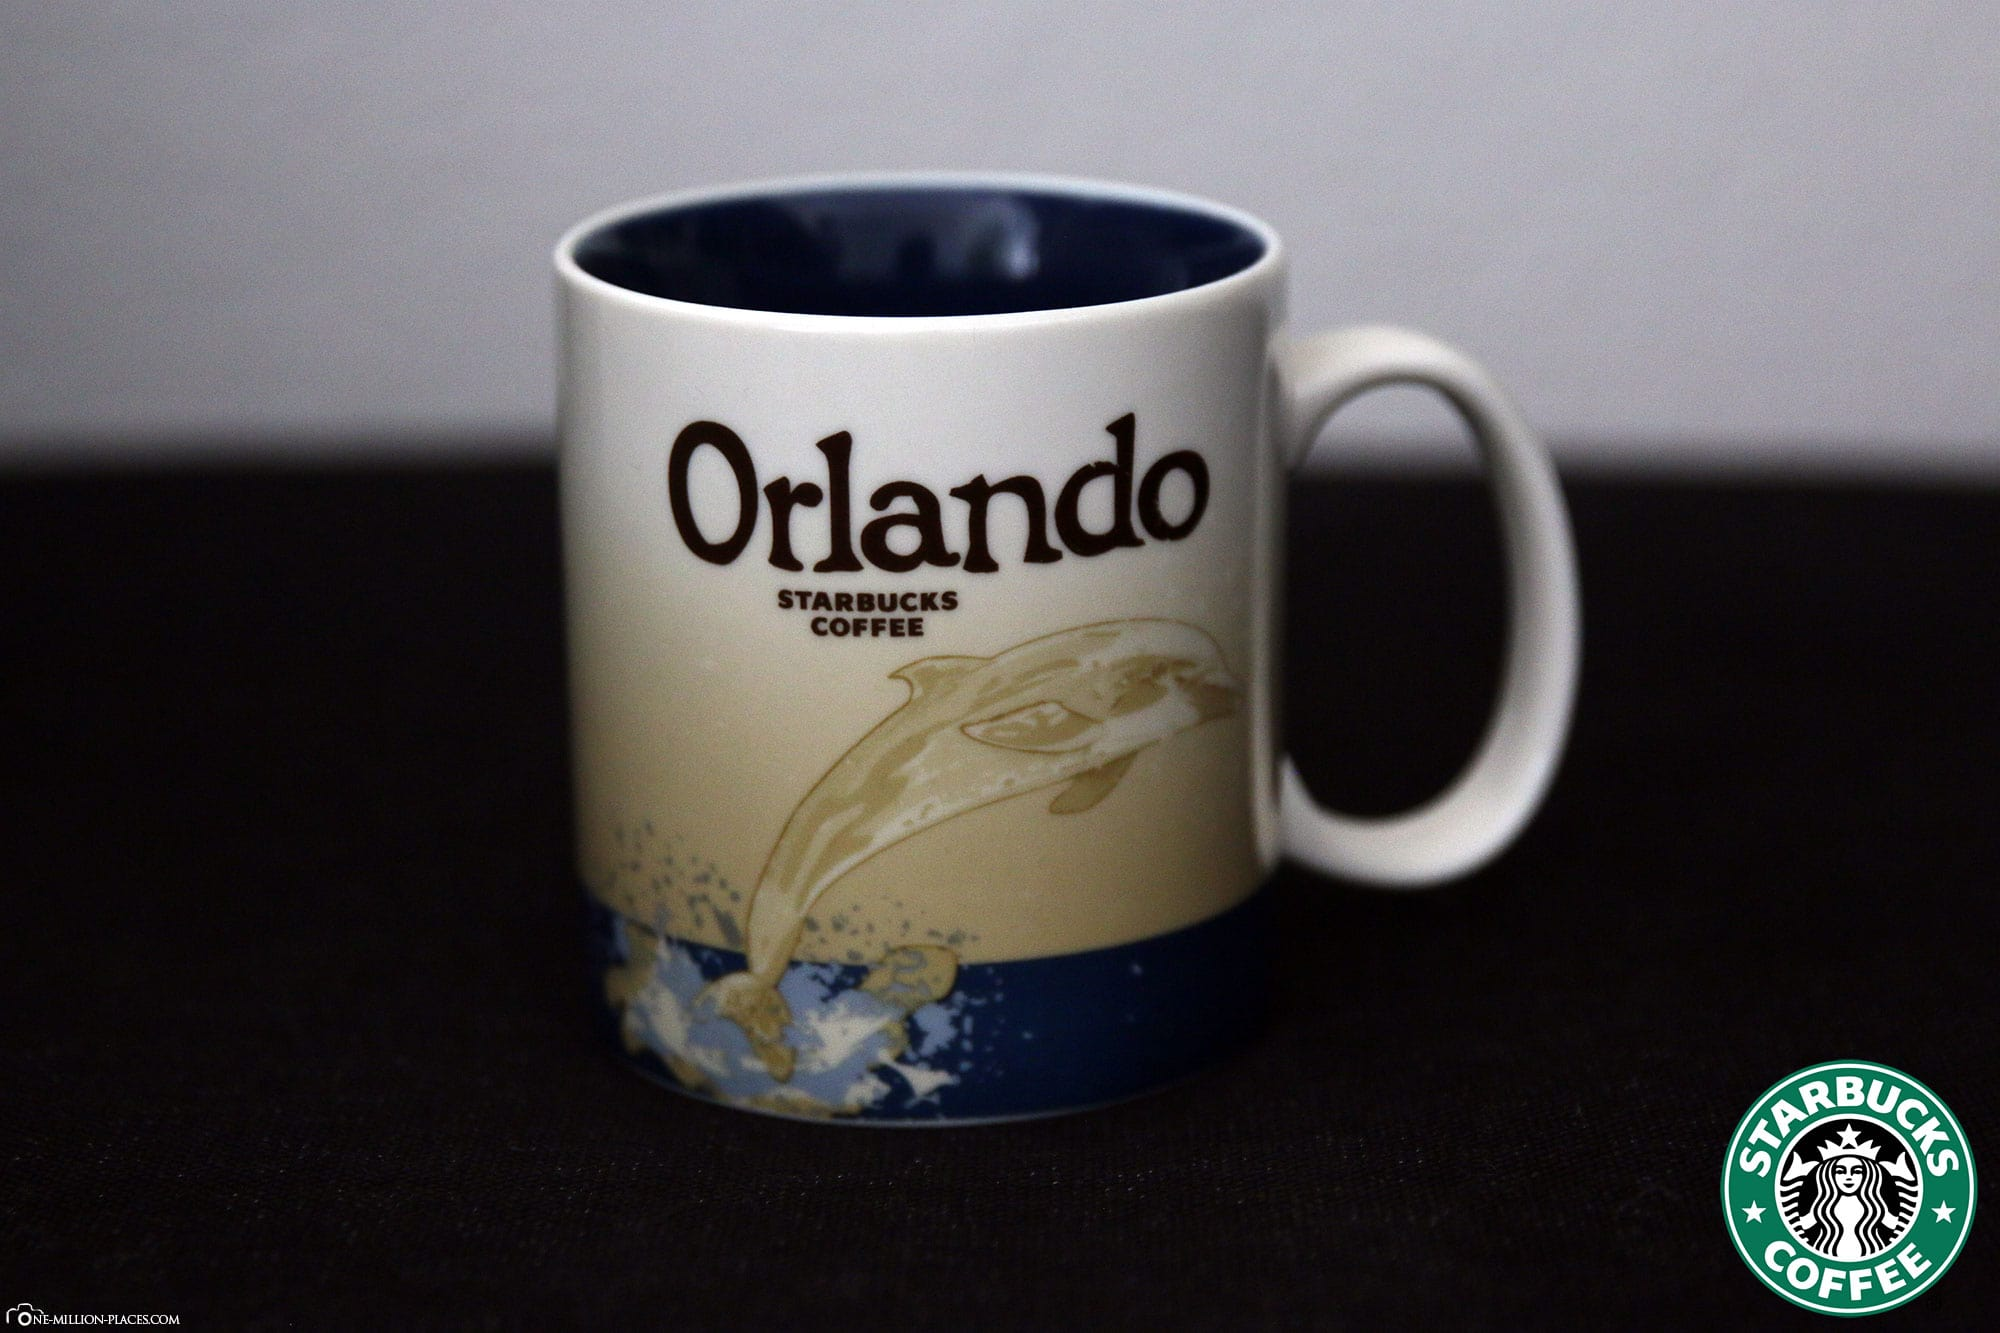 Orlando, Starbucks Tasse, Global Icon Serie, City Mugs, Sammlung, USA, Reisebericht